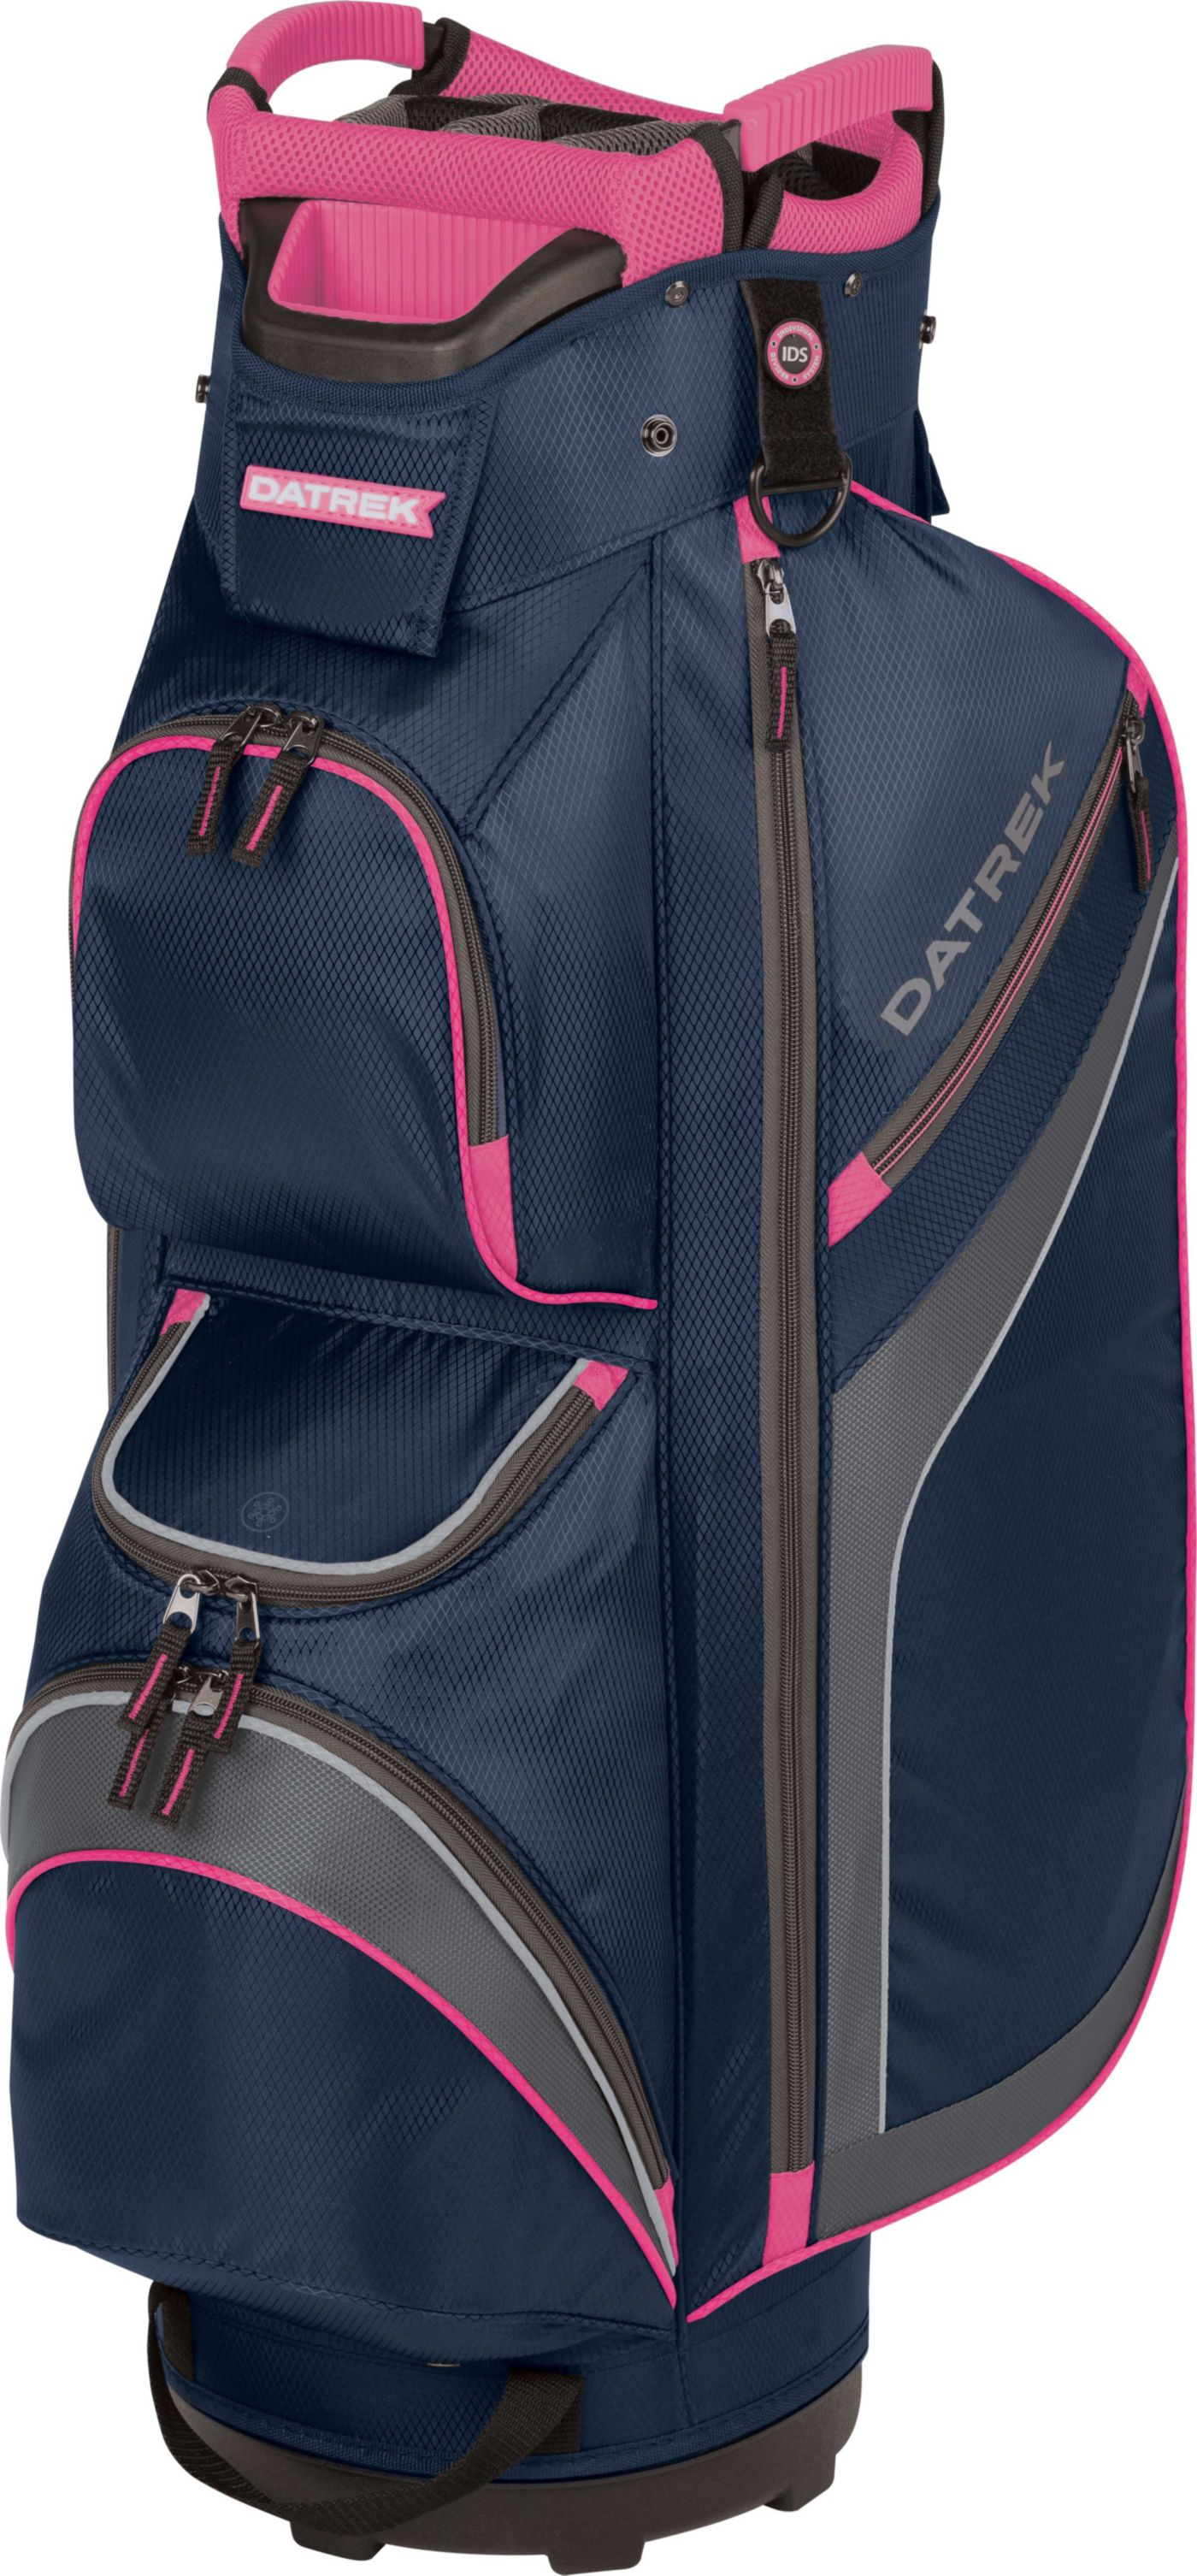 Datrek Women's DG Lite II Cart Golf Bag